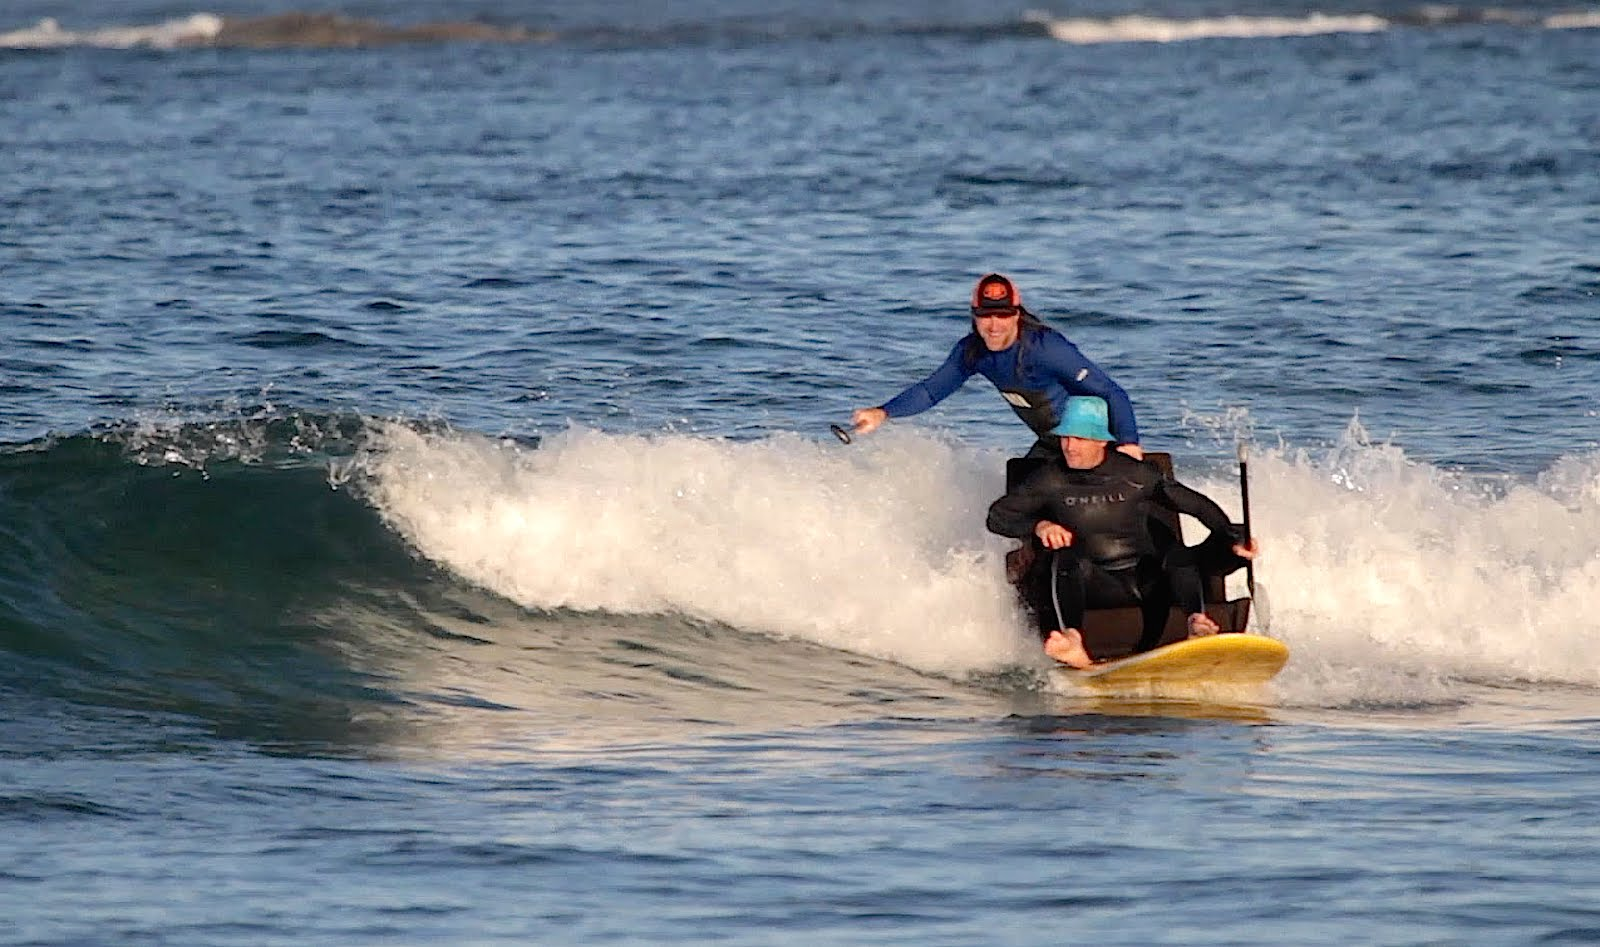 Dogman & Ploon offer us a funny SUP surfing video !